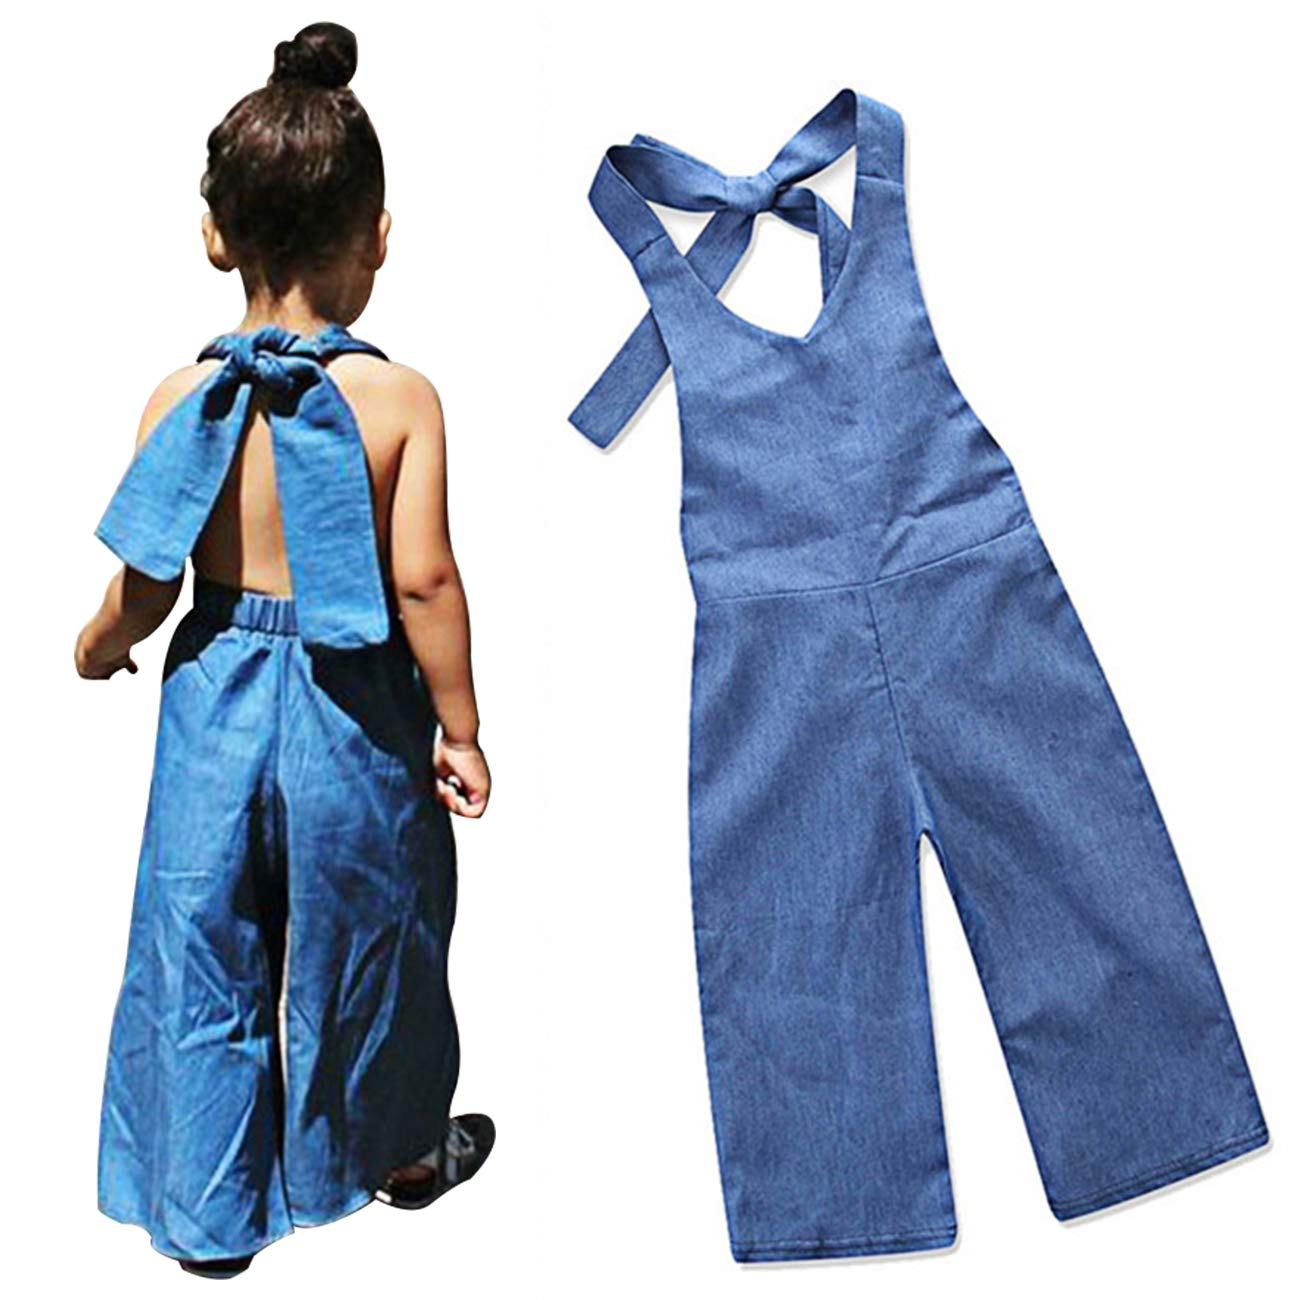 Yoveme Toddler Baby Girl Summer Clothes Overalls Backless Jeans Denim Suspenders Outfit Bell-Bottom Blue Pants